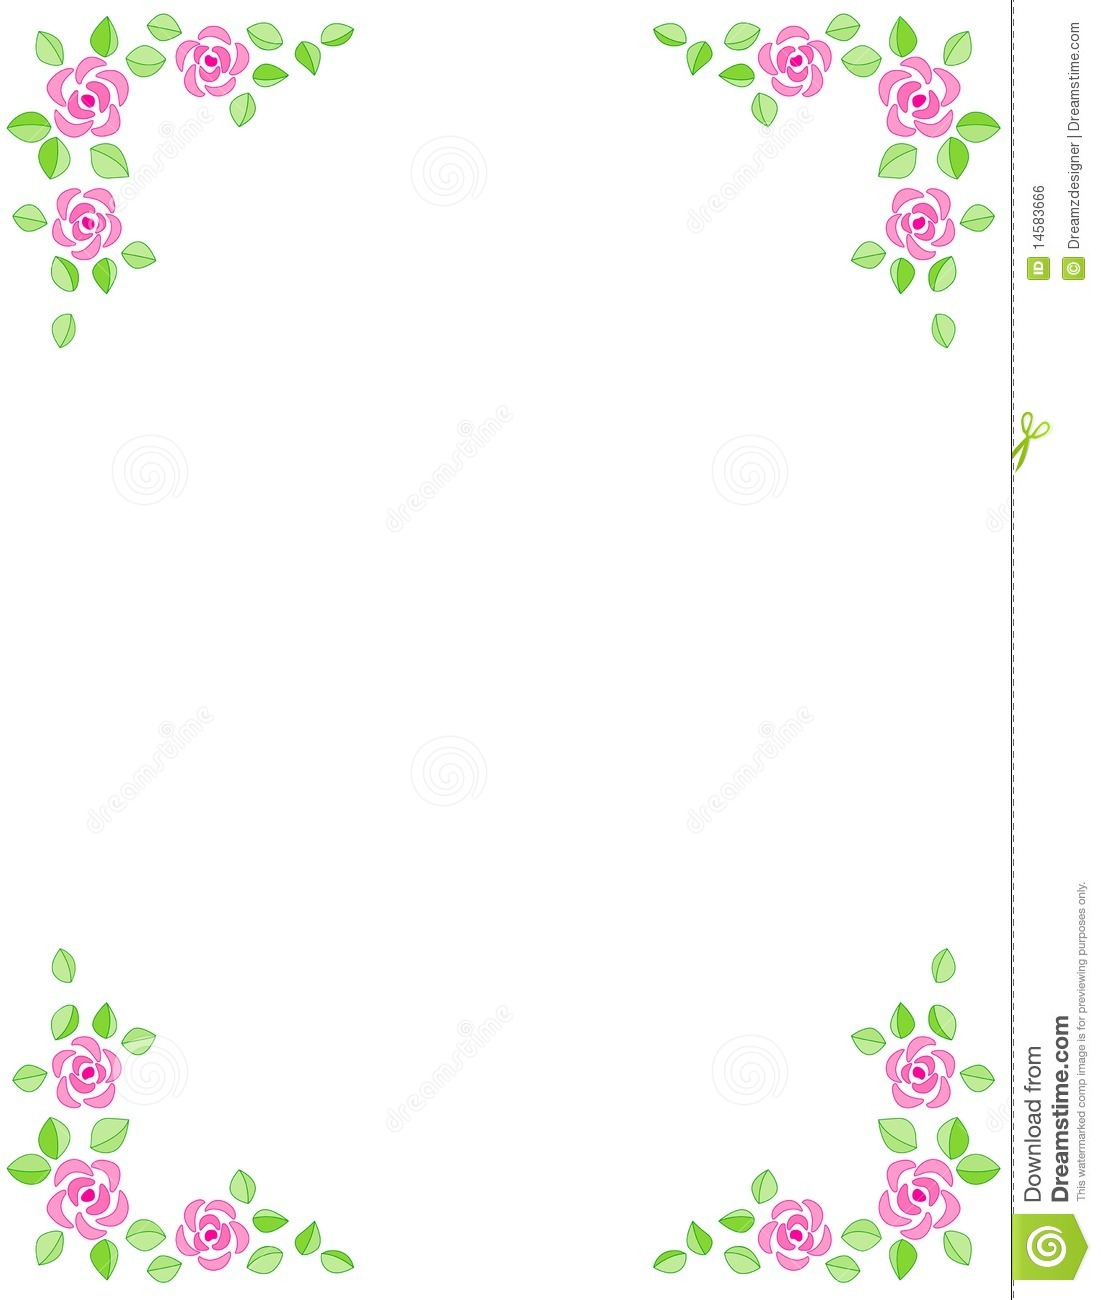 Invitations Clip Art Free | Clipart Panda - Free Clipart Images